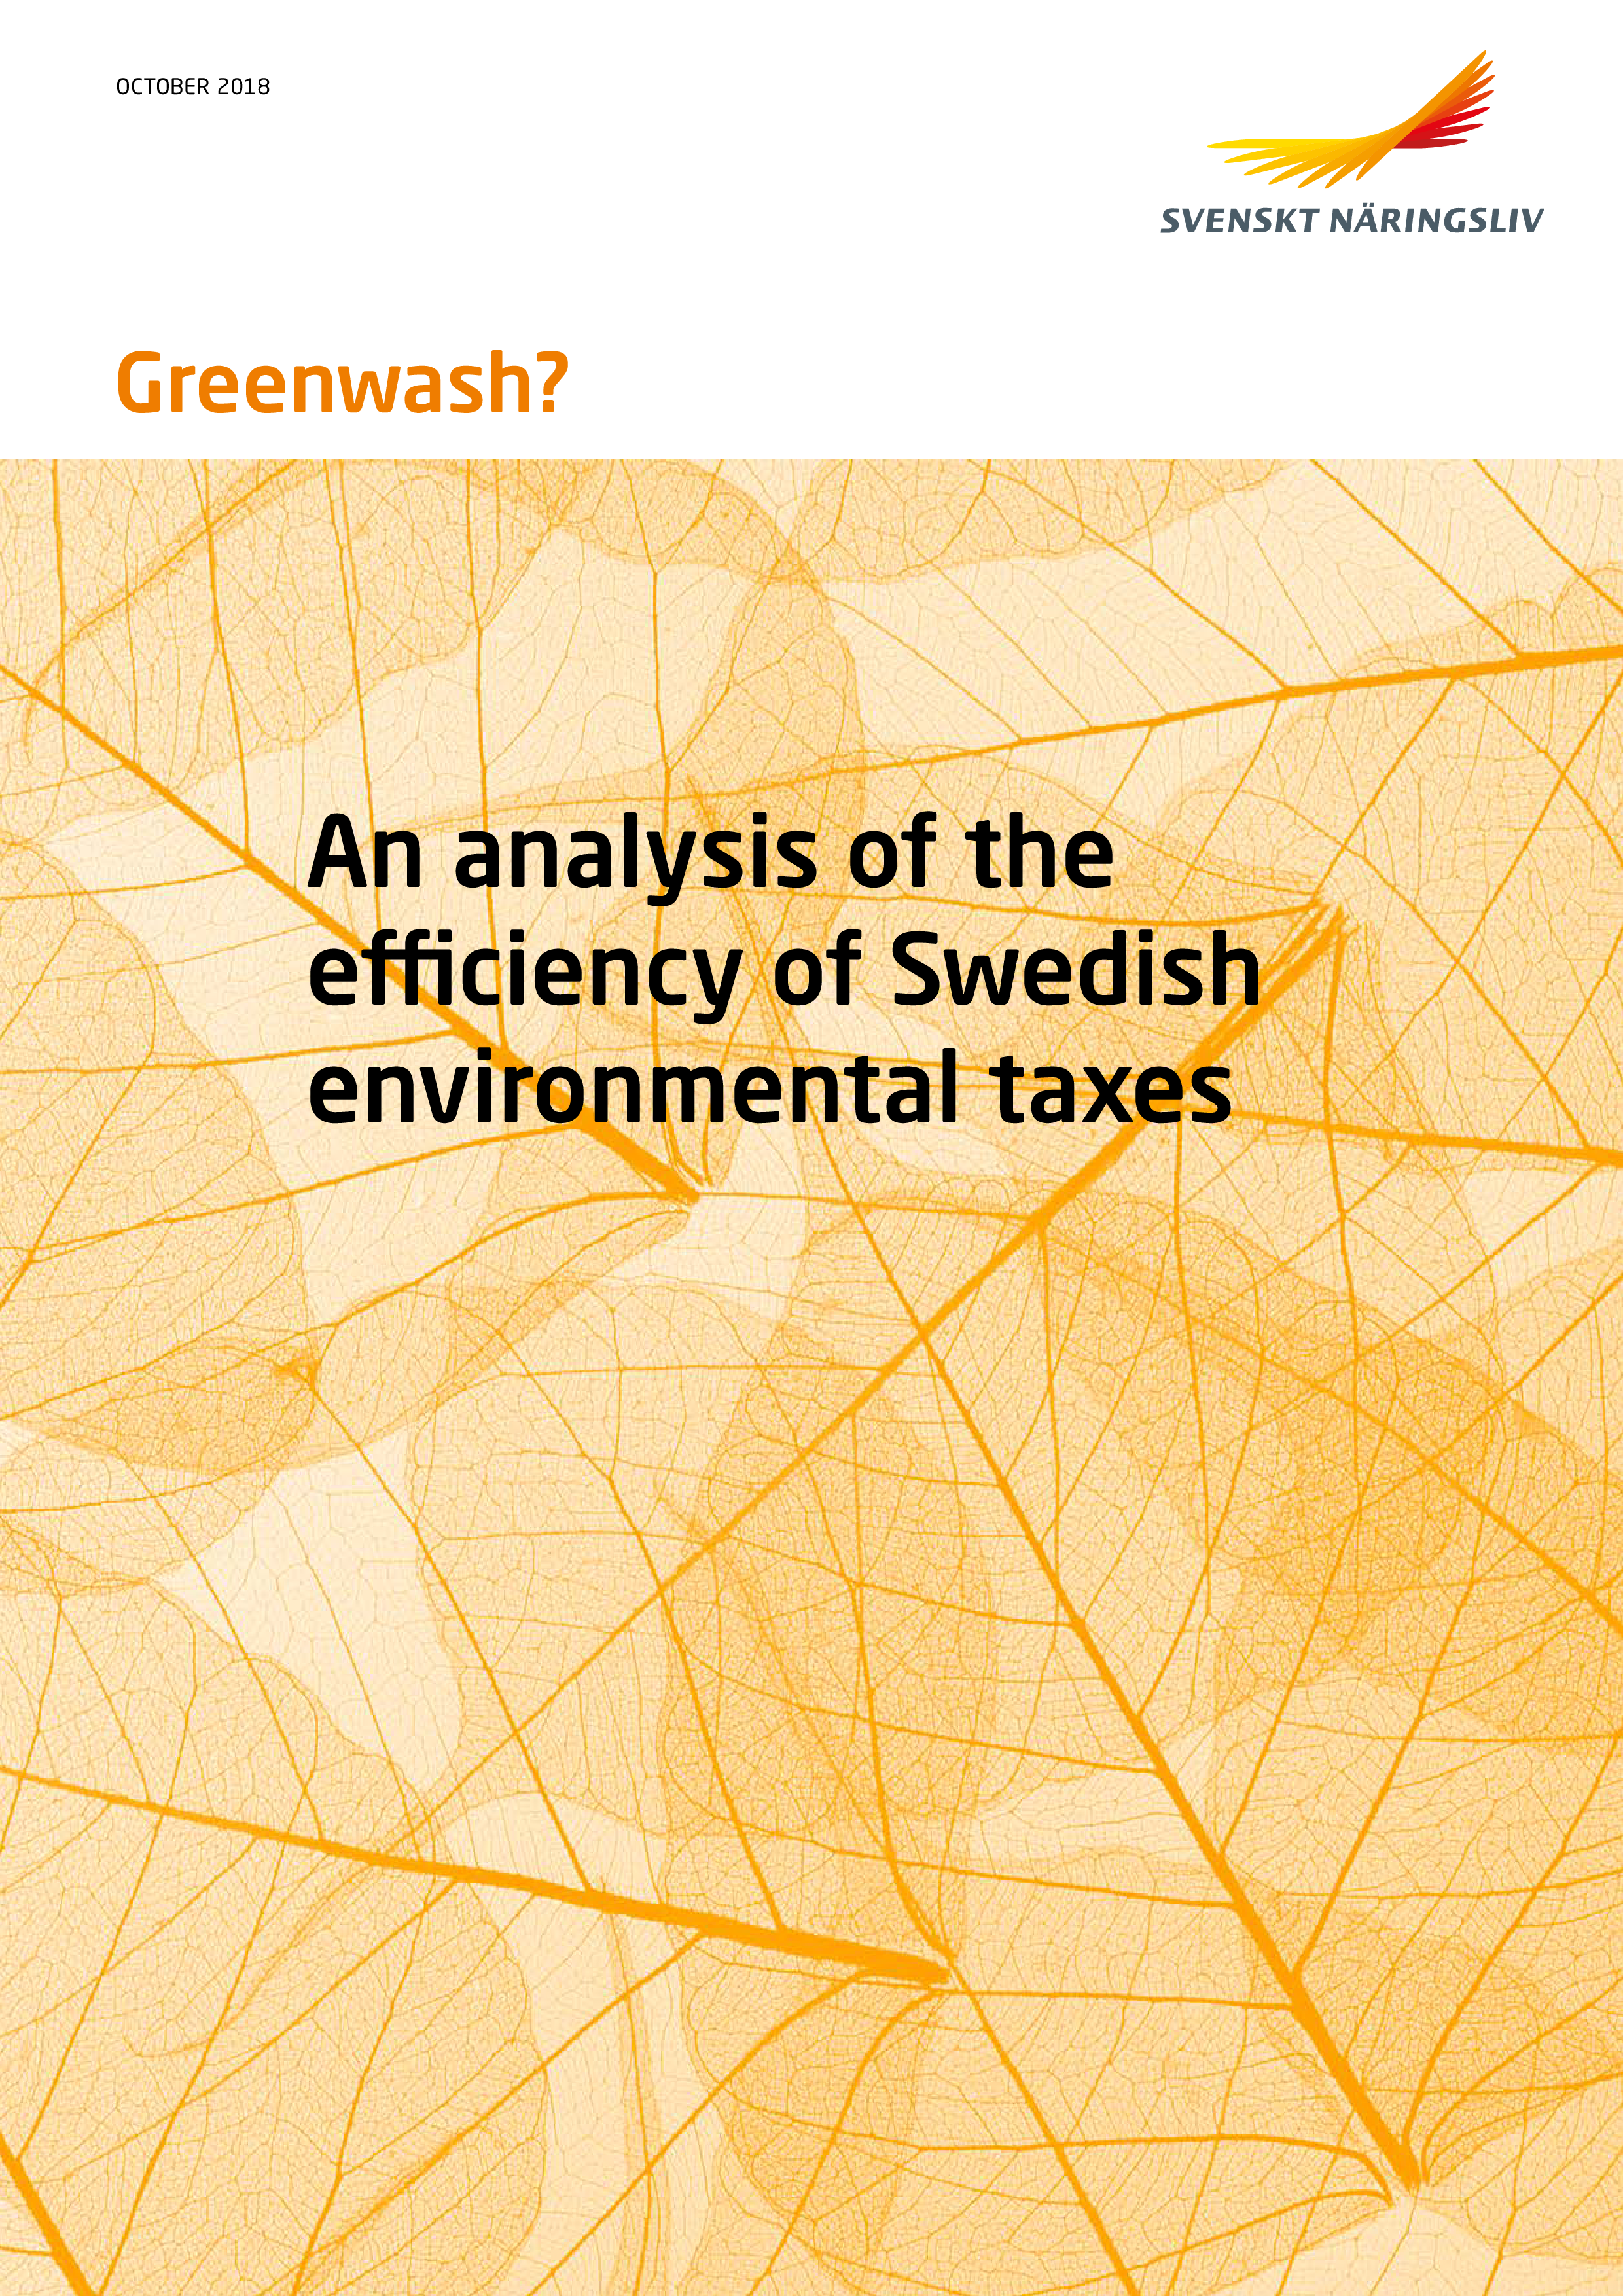 Greenwash? An analysis of the efficiency of Swedish environmental taxes